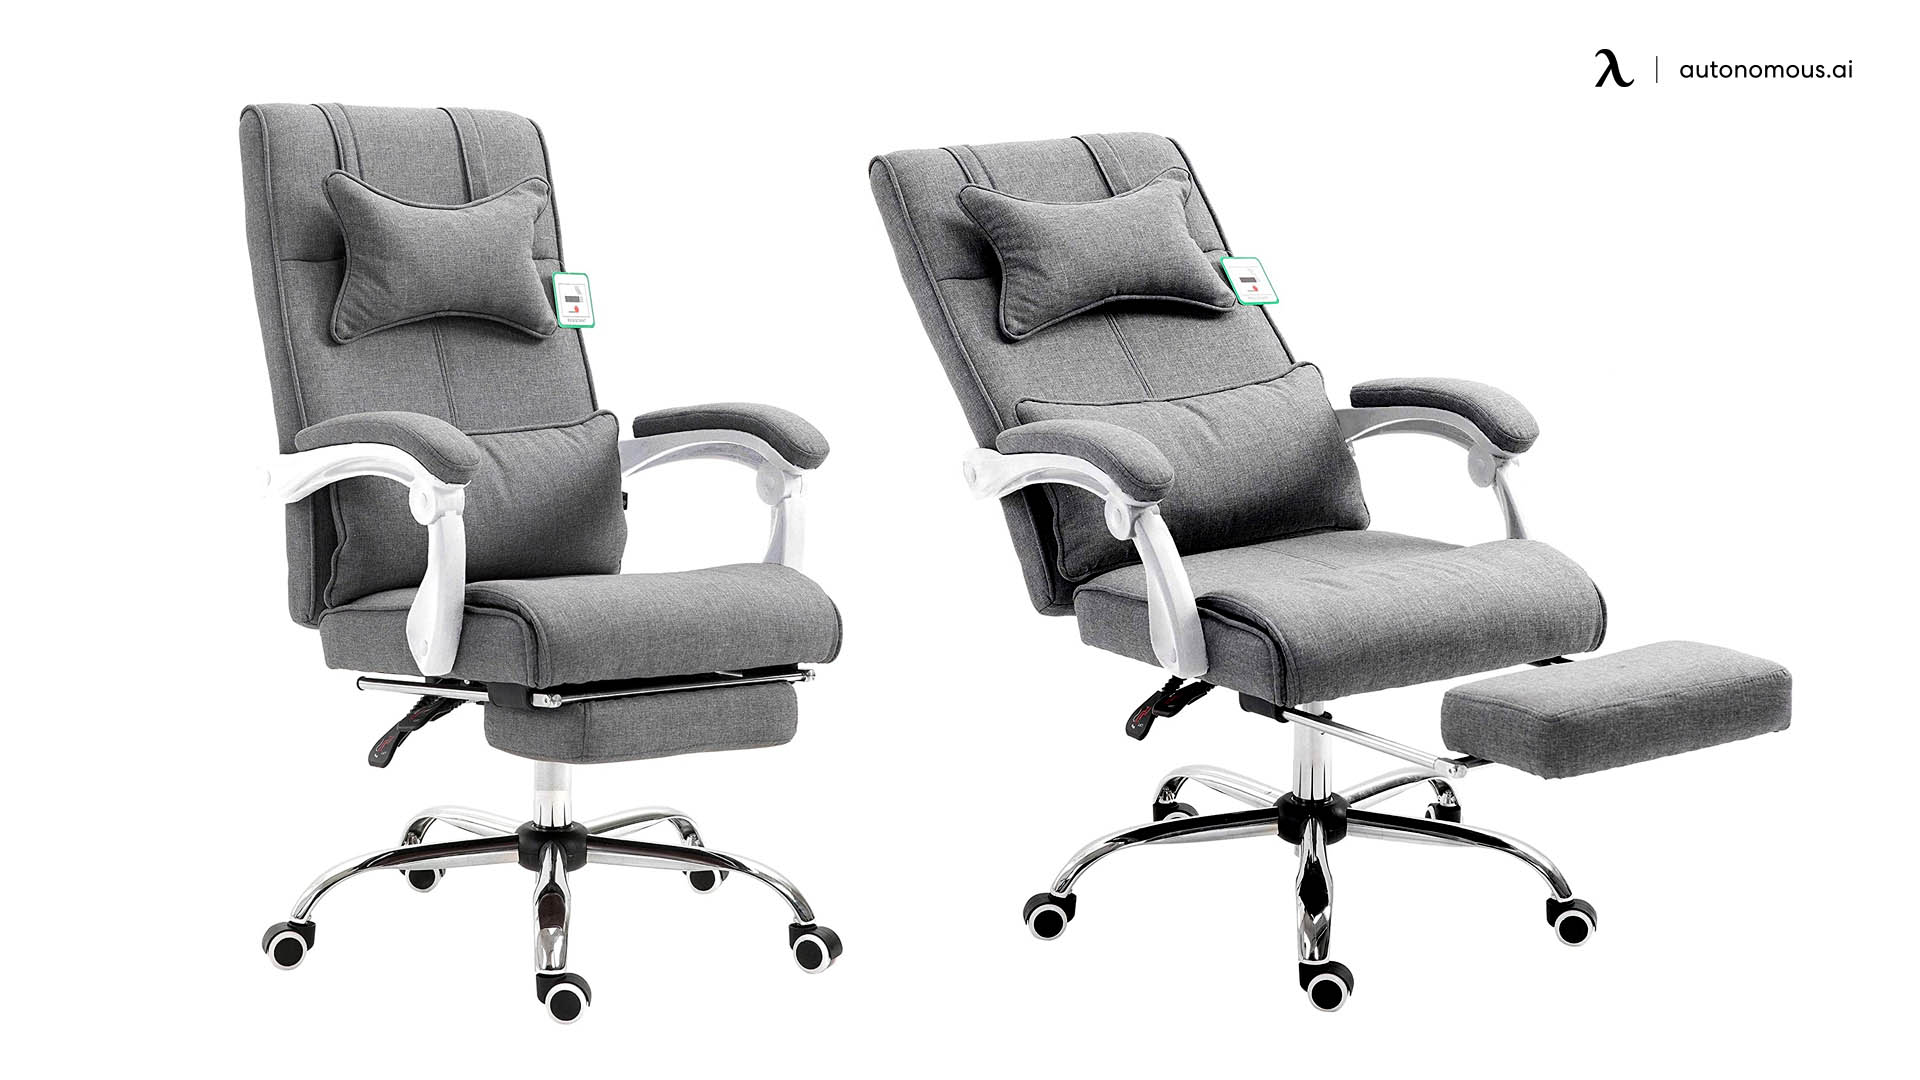 Cherry Tree Furniture Office Chair with Footrest Retraction and Reclining Features